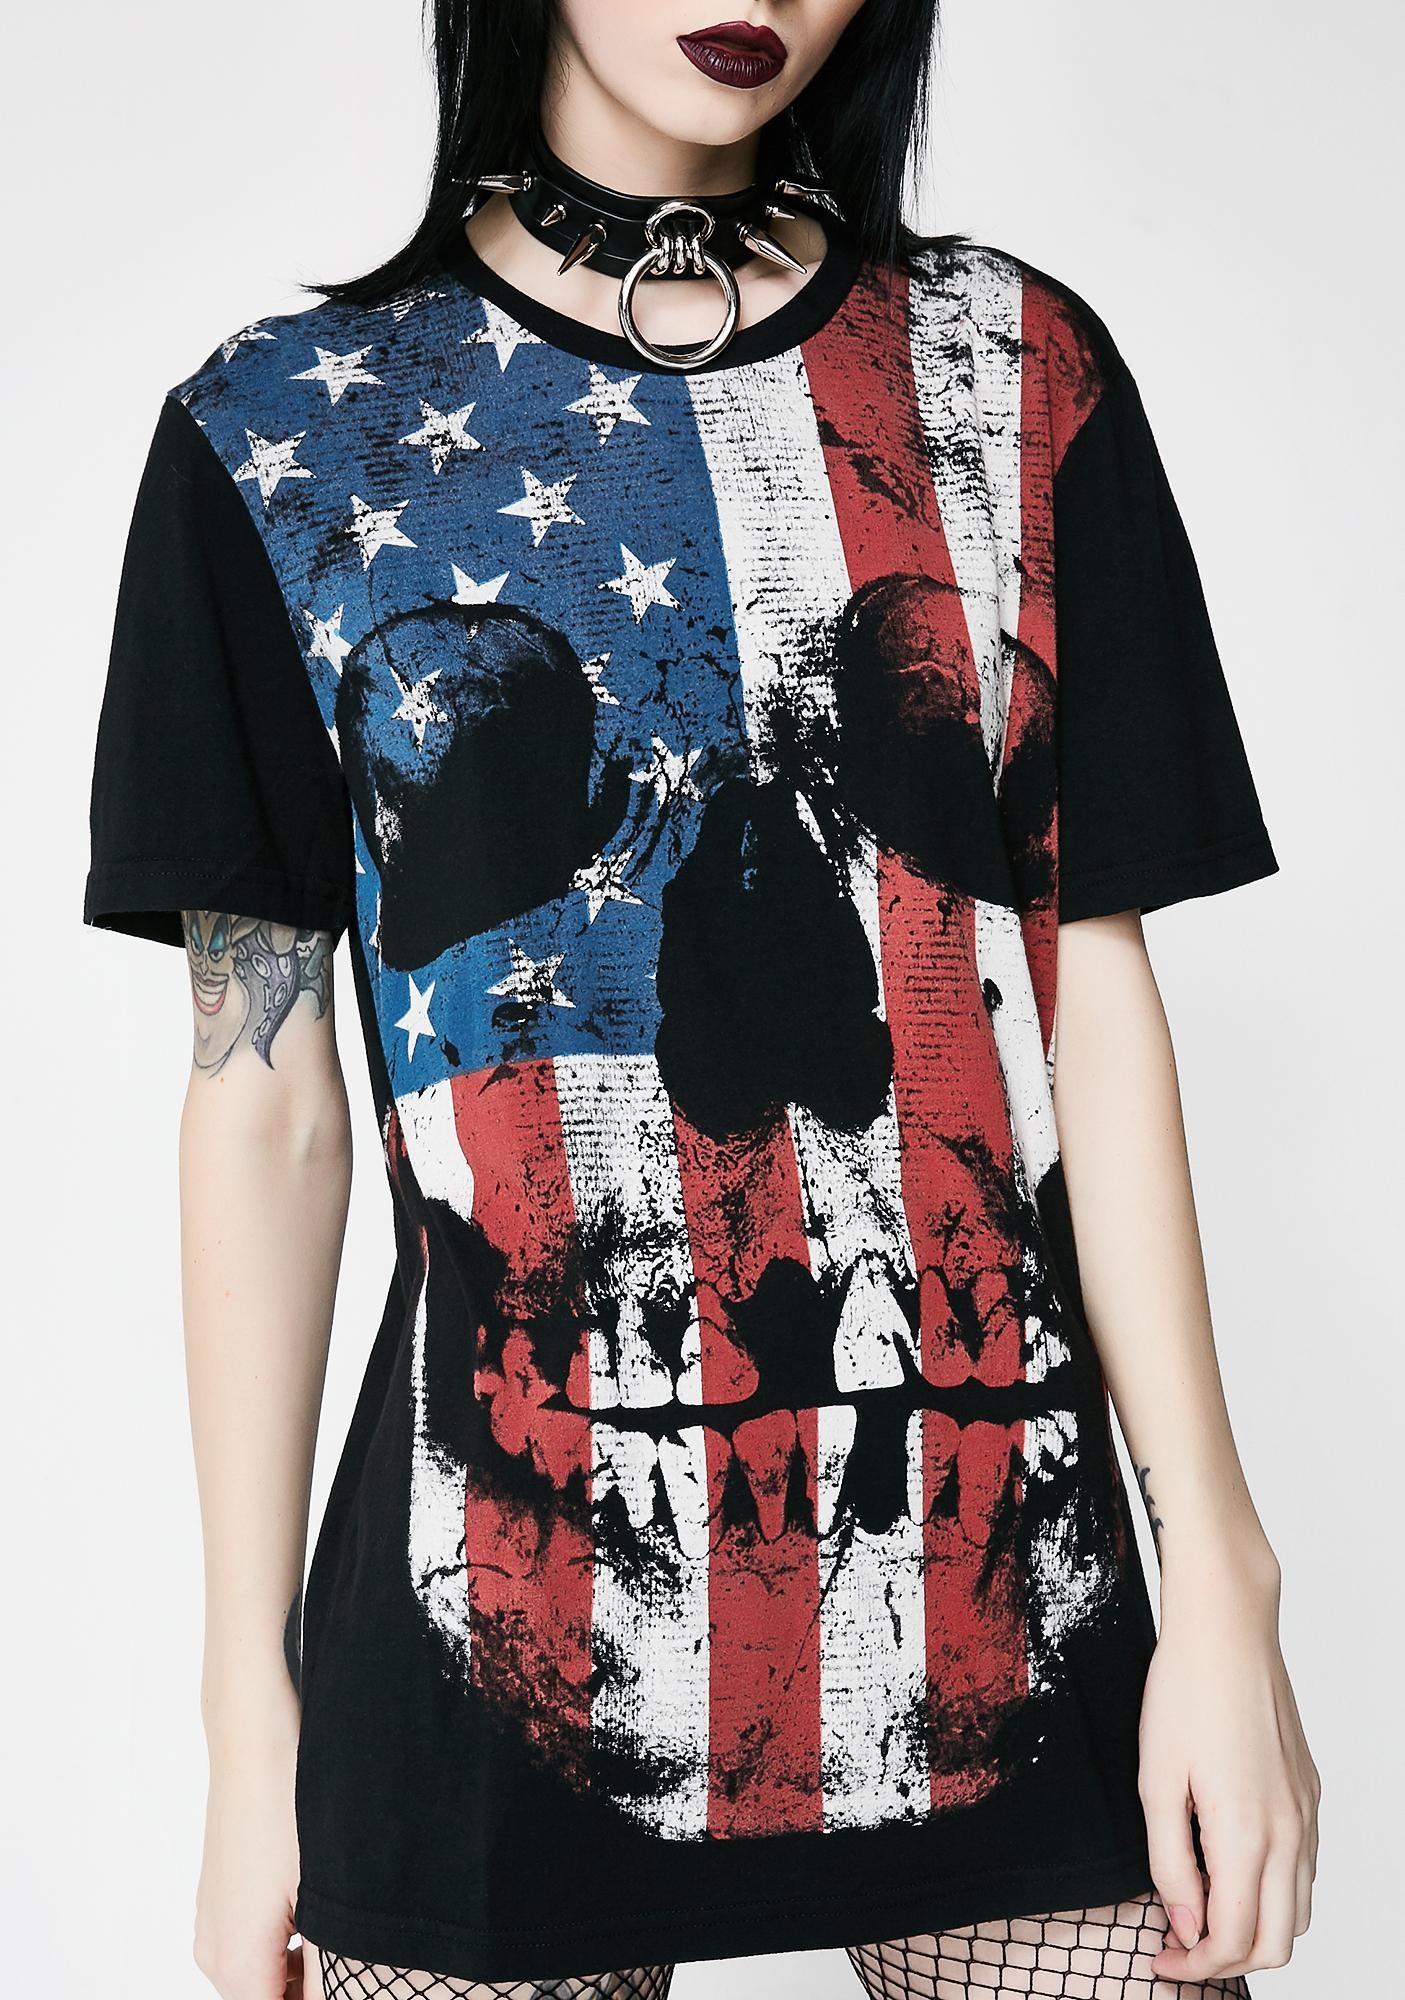 Iron Fist Stars And Stripes Tee